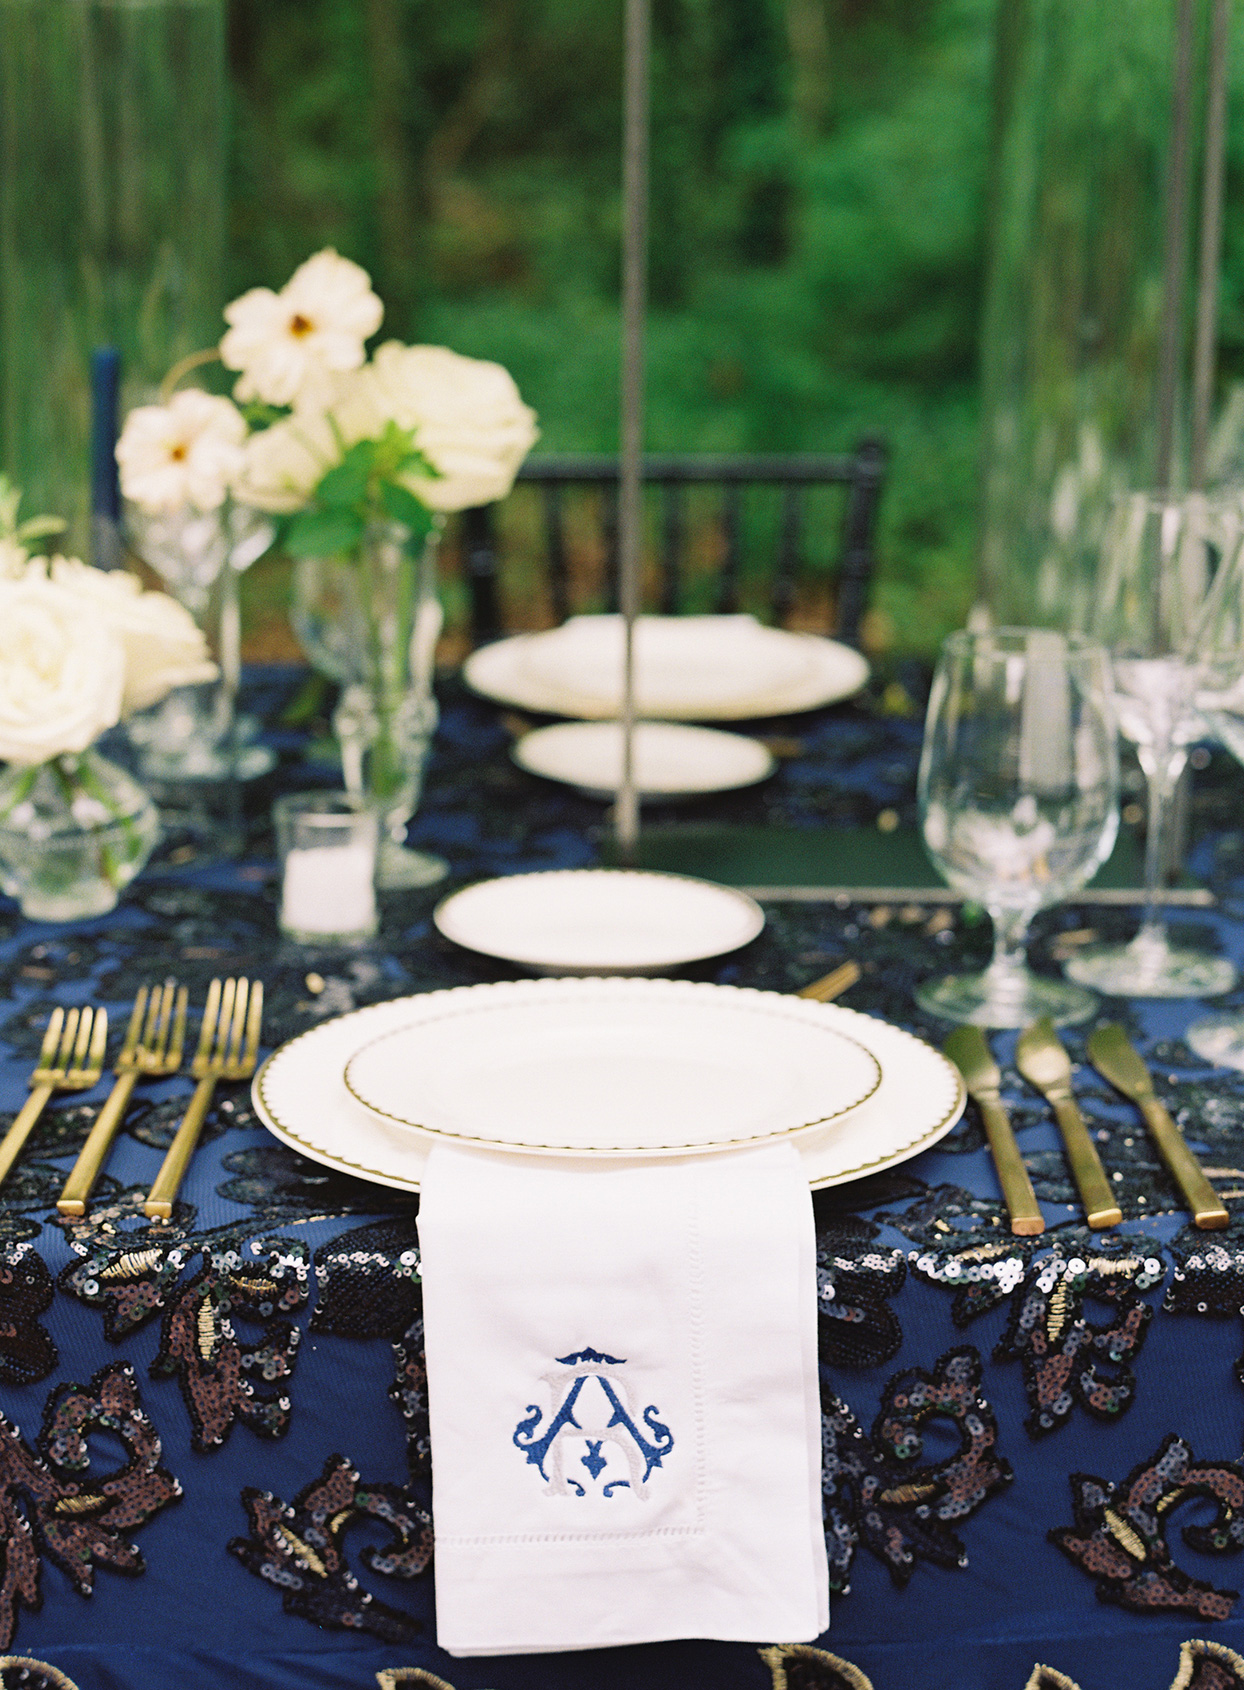 white, blue and gold place setting with monogrammed napkin